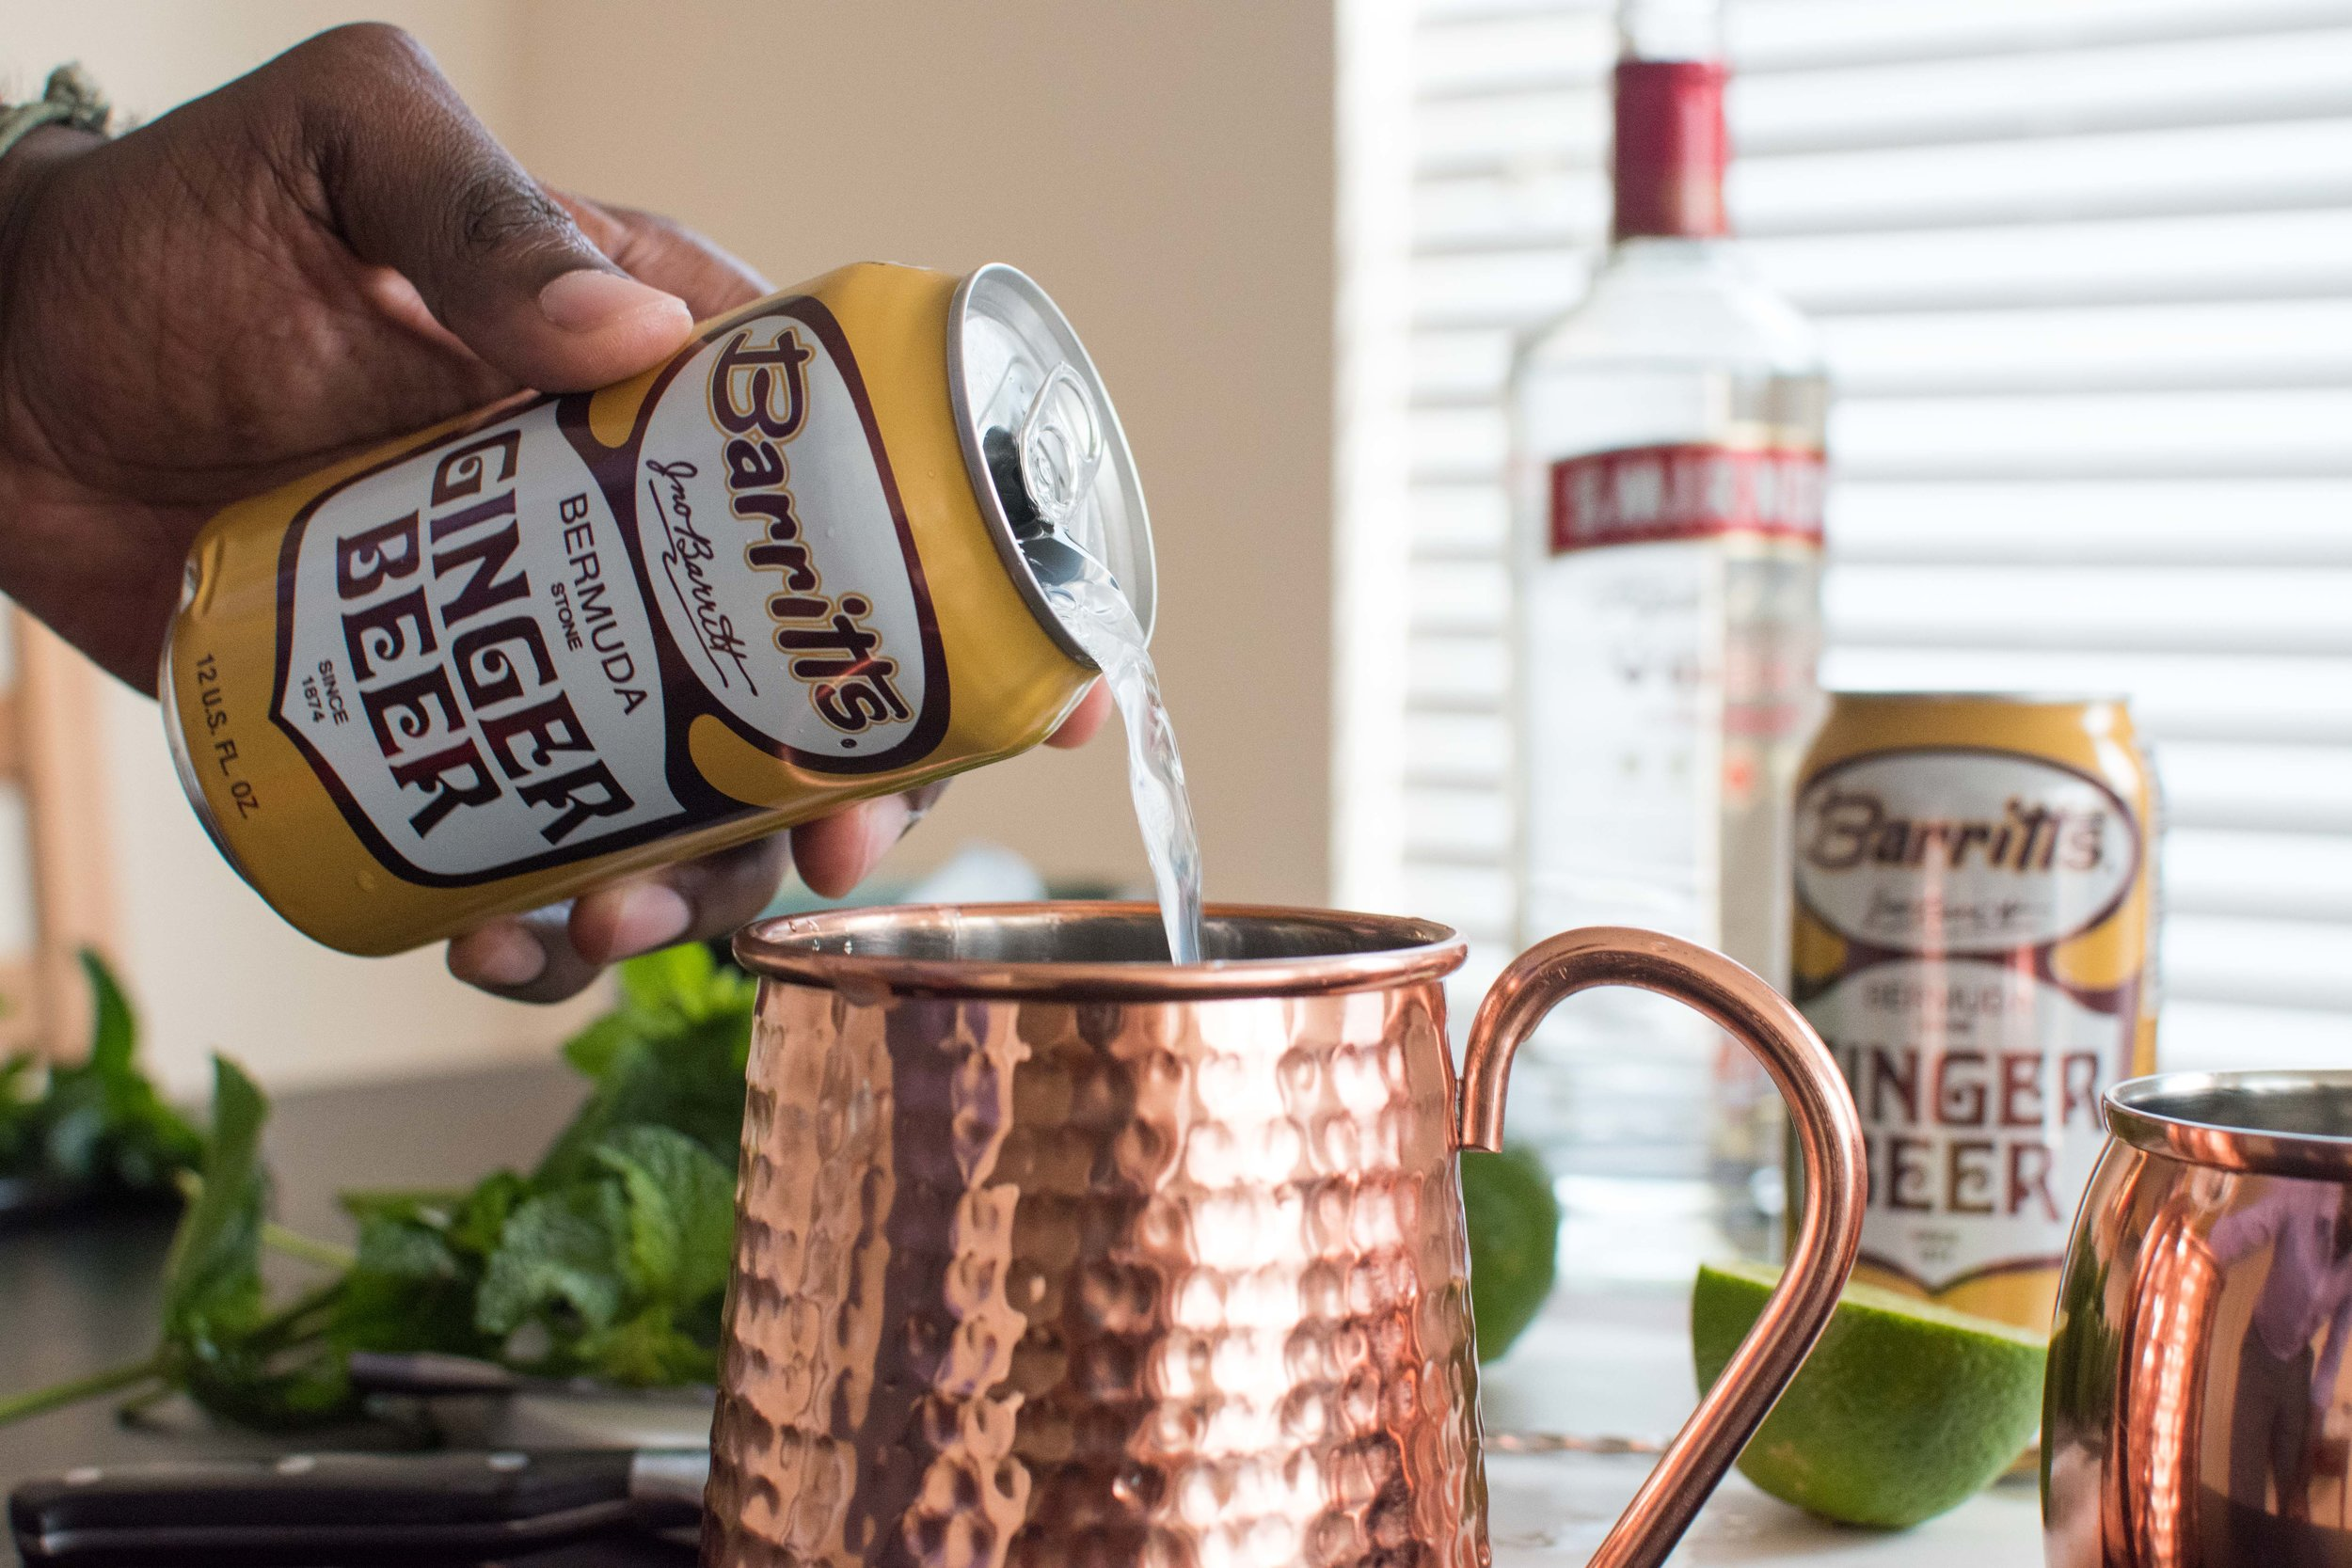 Moscow Mule Recipe Barritts Ginger Beer-23.jpg